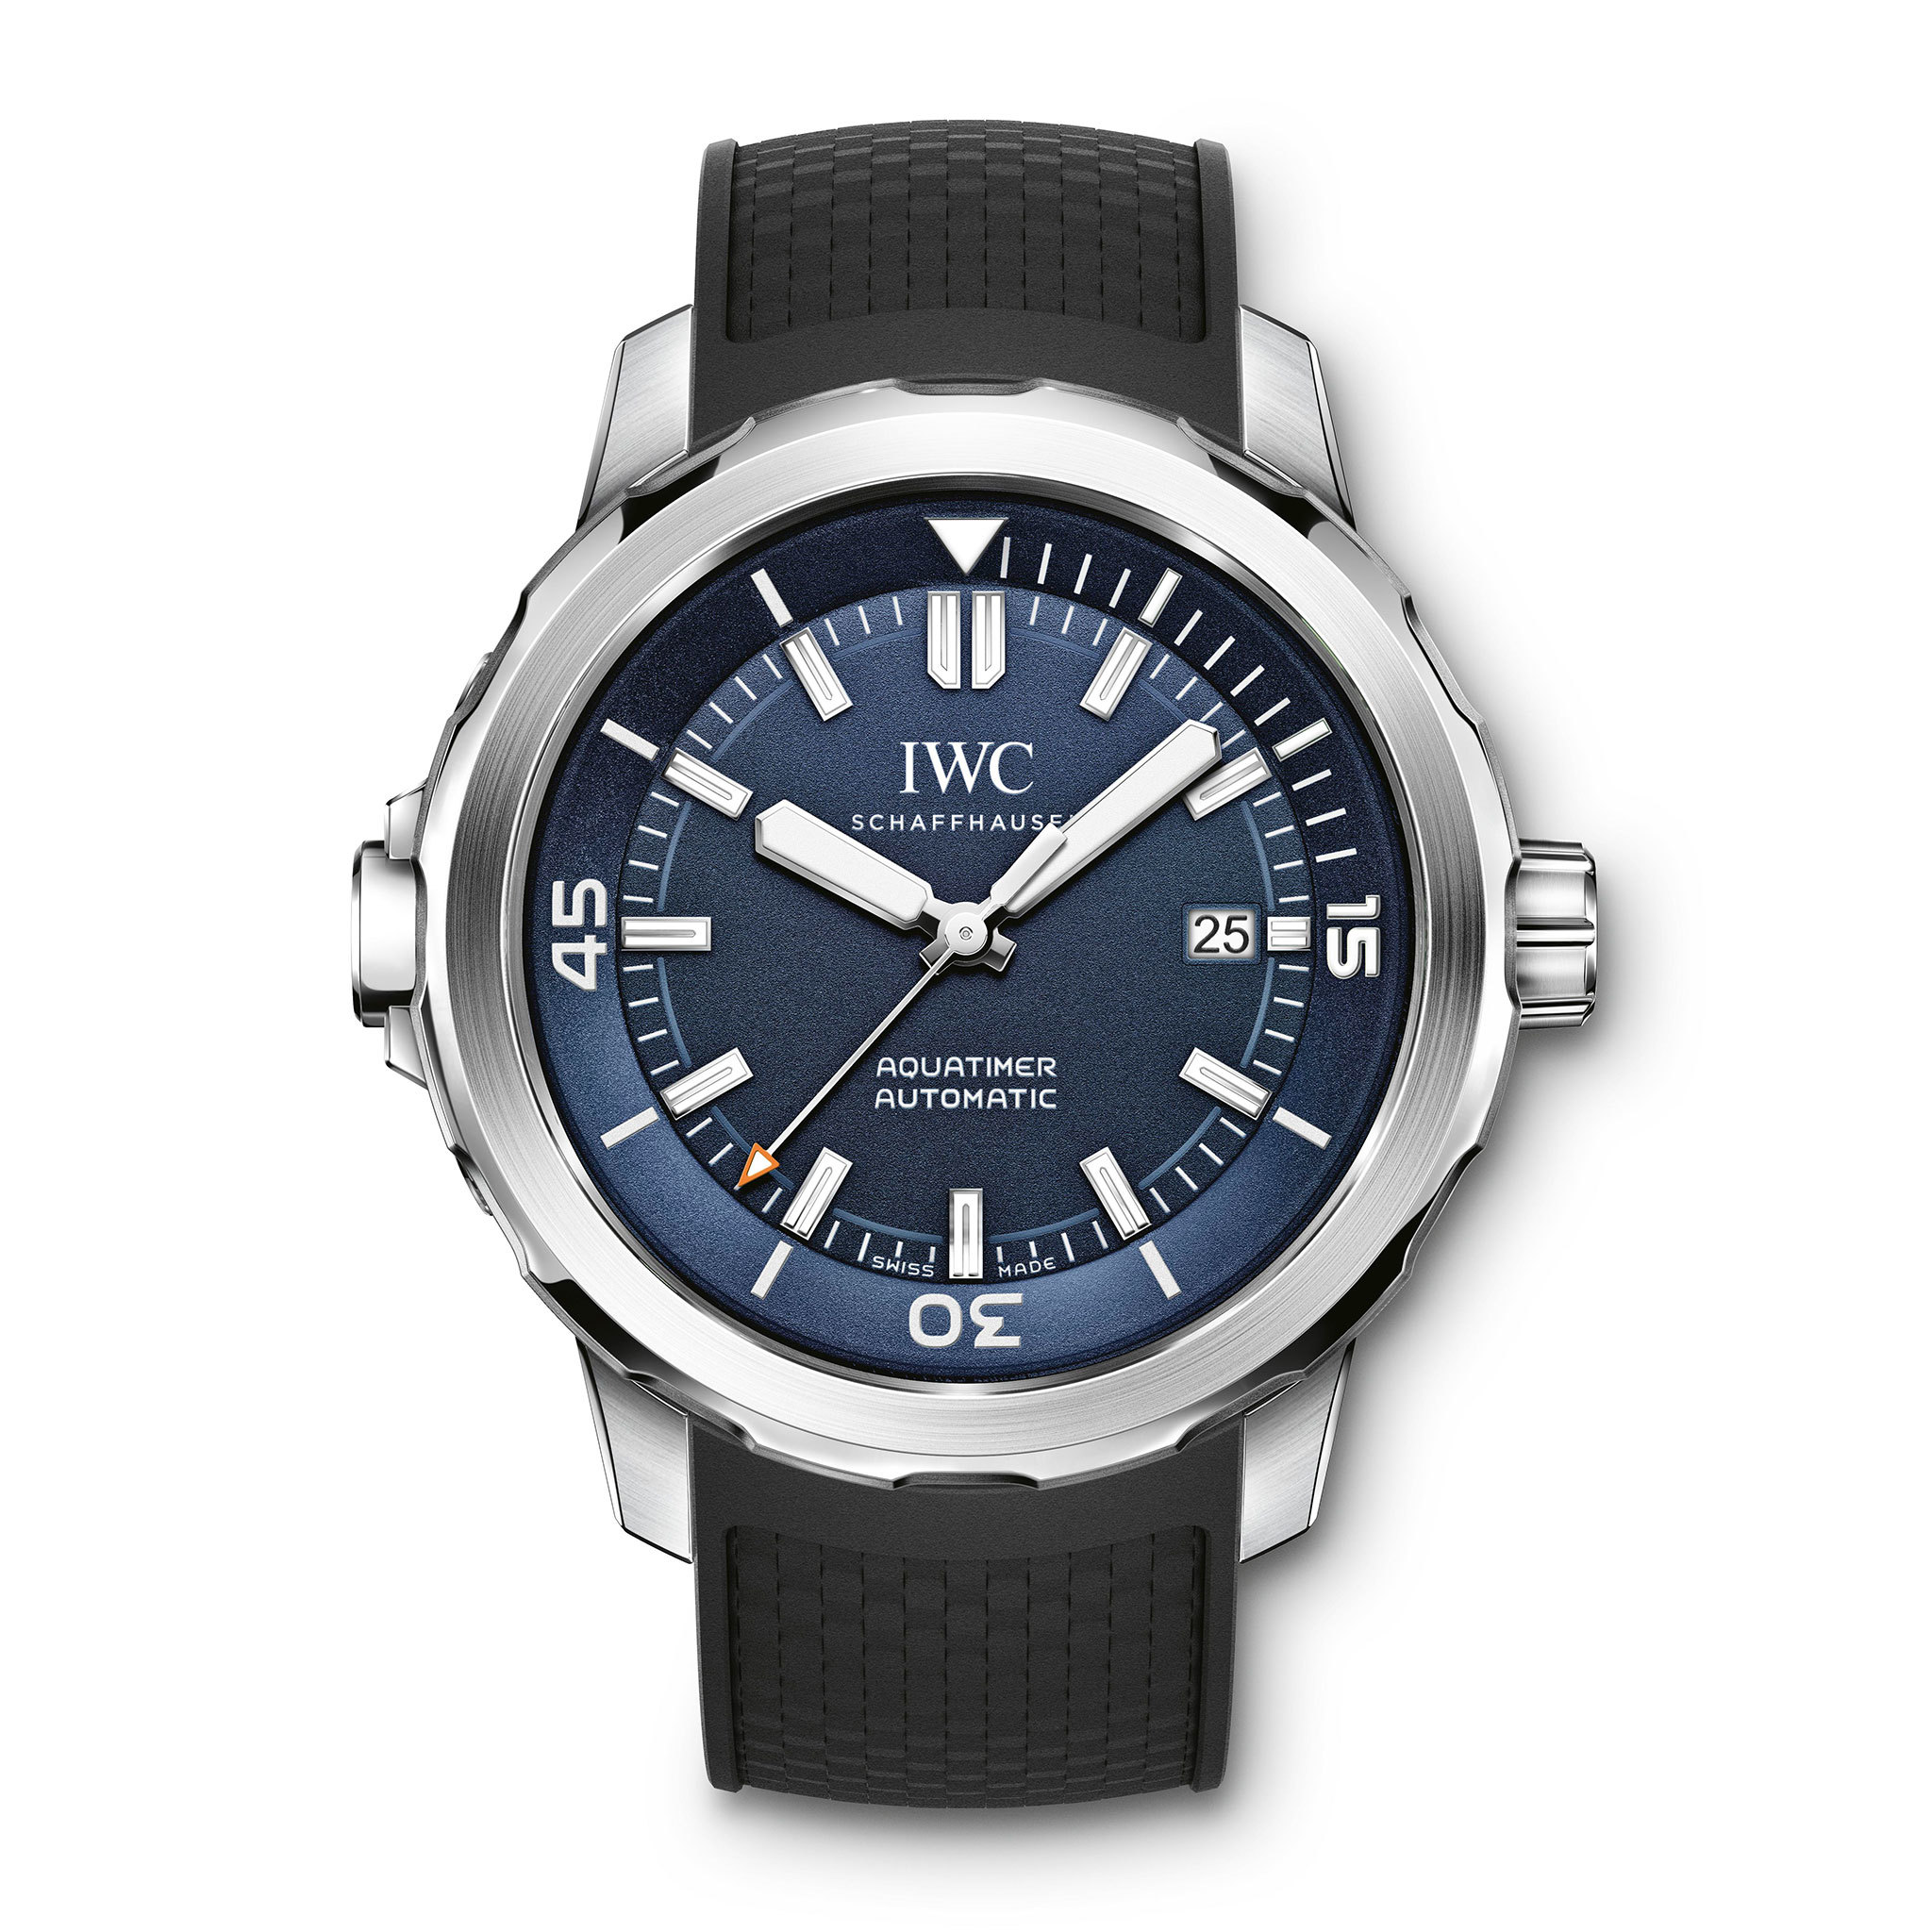 AUTOMATIC 42 EXPED.J.-­Y.COUSTEAU